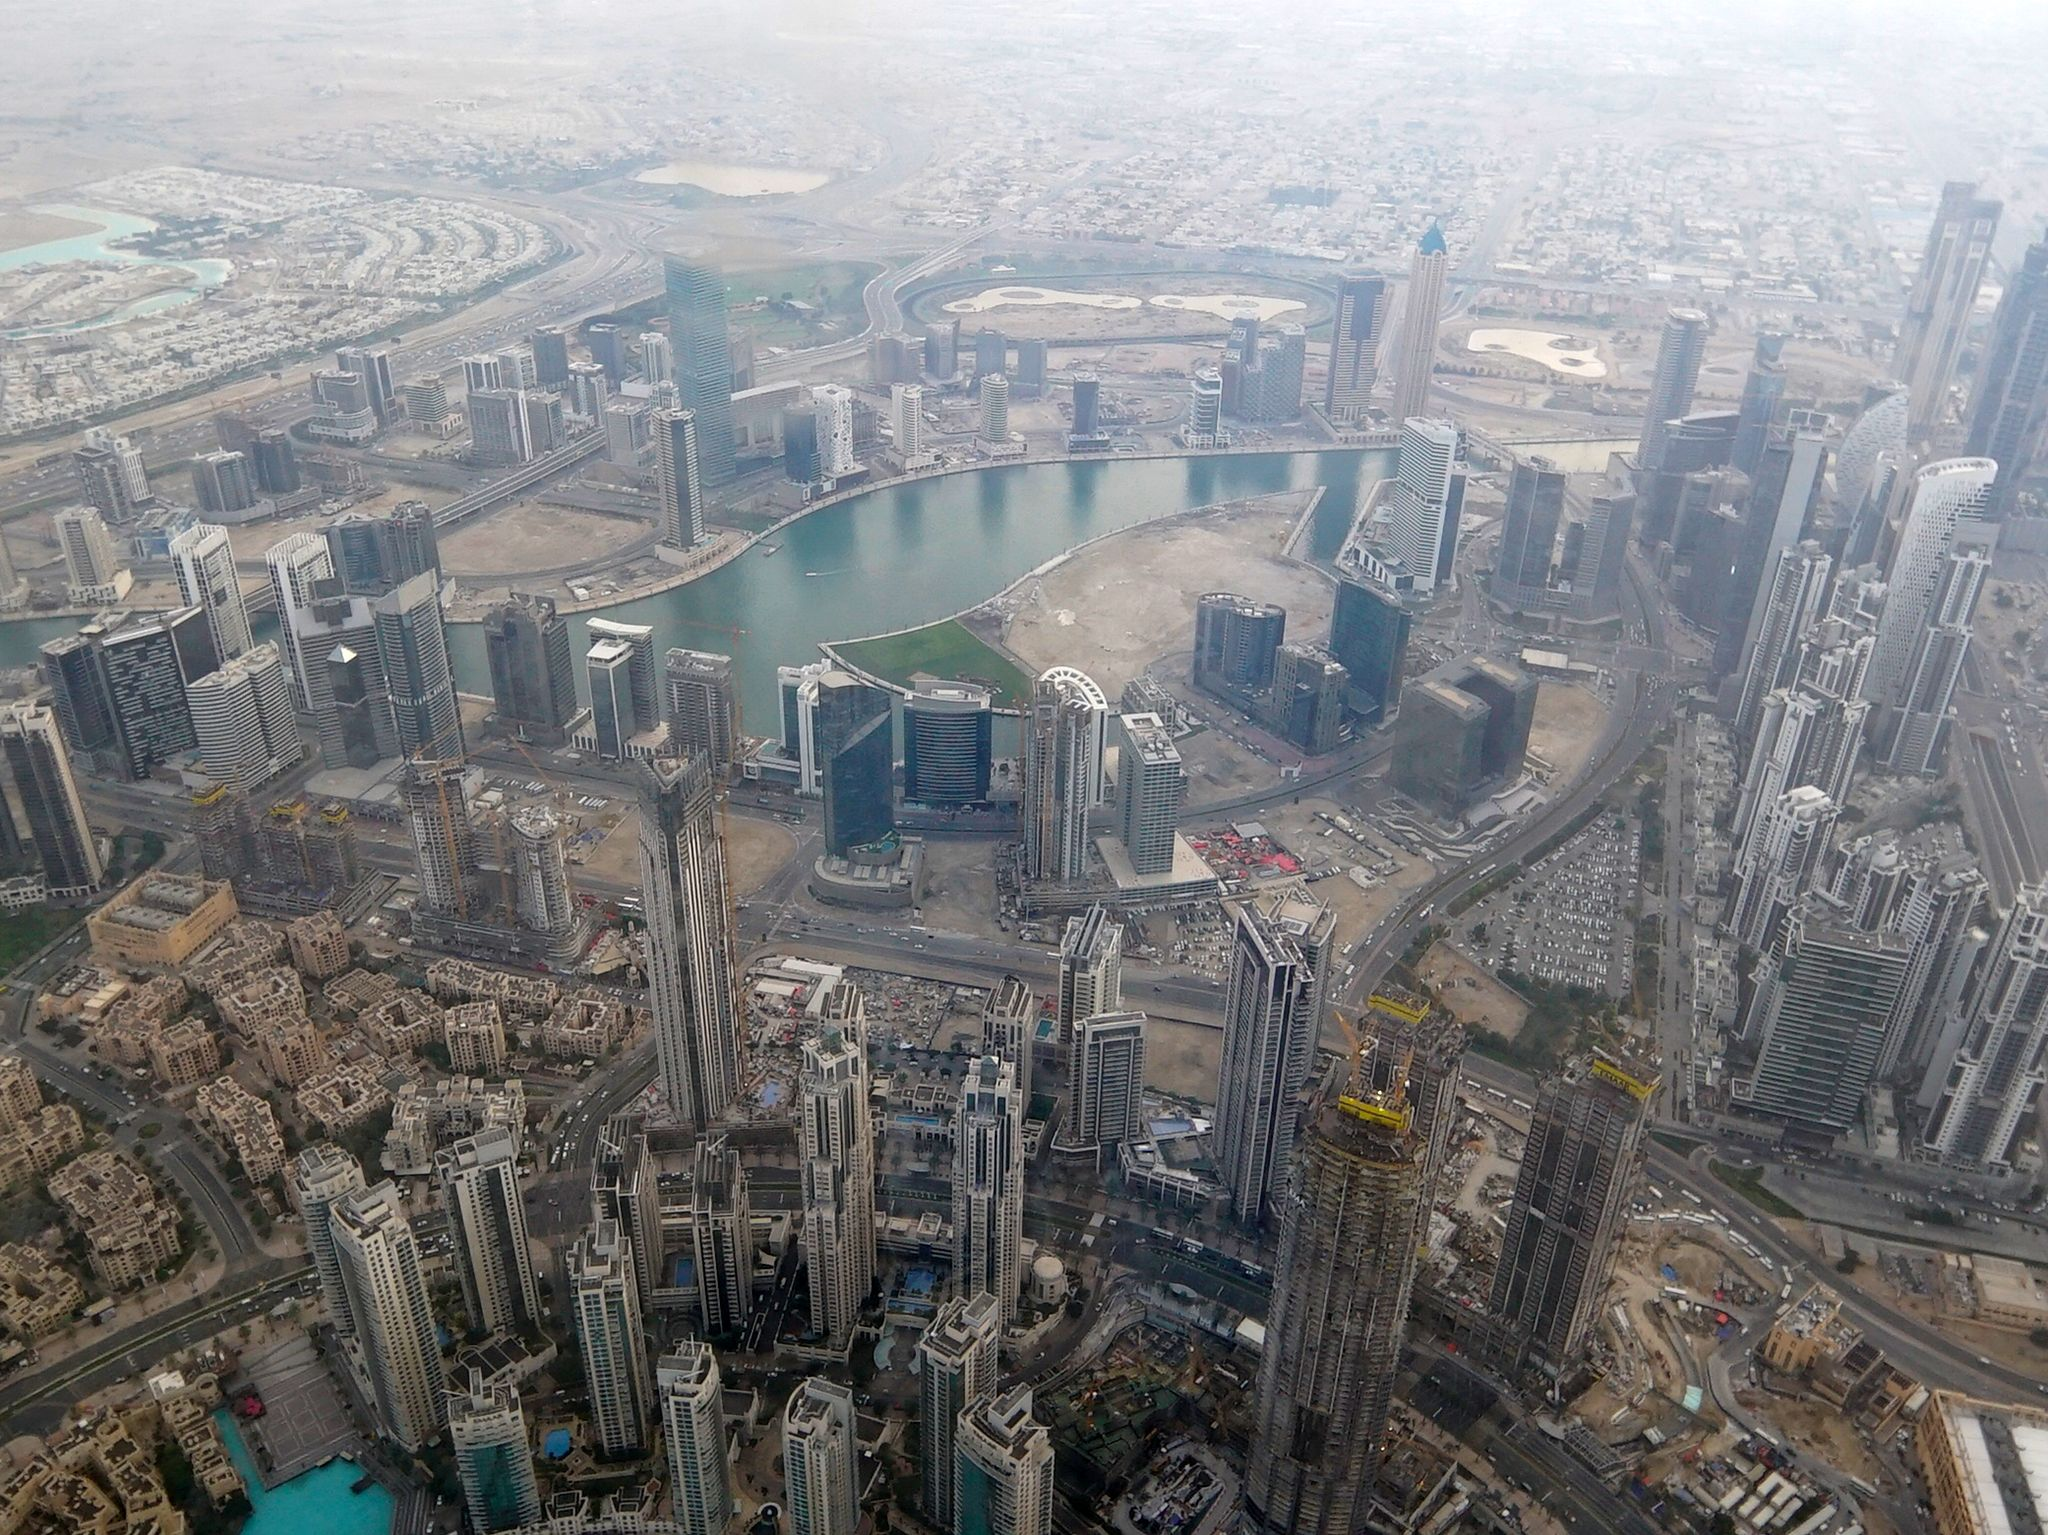 View from Burj. This image is from Superstructures: Engineering Marvels. [Photo of the day - May 2019]